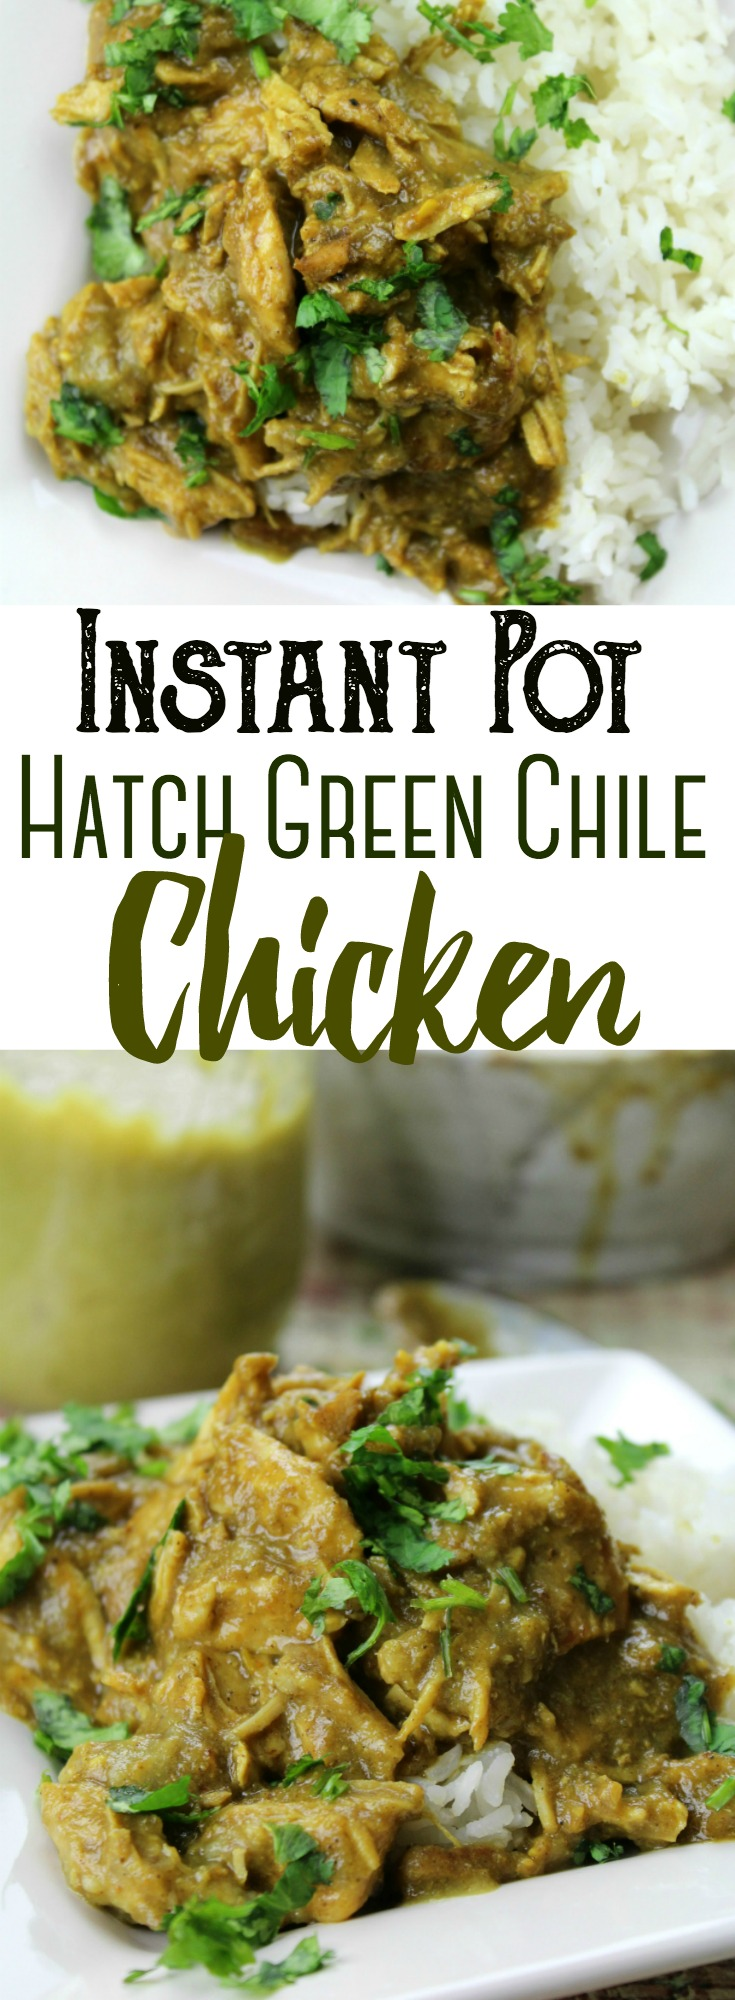 Shredded chicken cooked to perfection in a spicy Hatch green chile sauce and shredded to serve over rice - easily made in the Instant Pot! #InstantPot #PressureCooker #Hatch #GreenChile #Chicken #Healthy